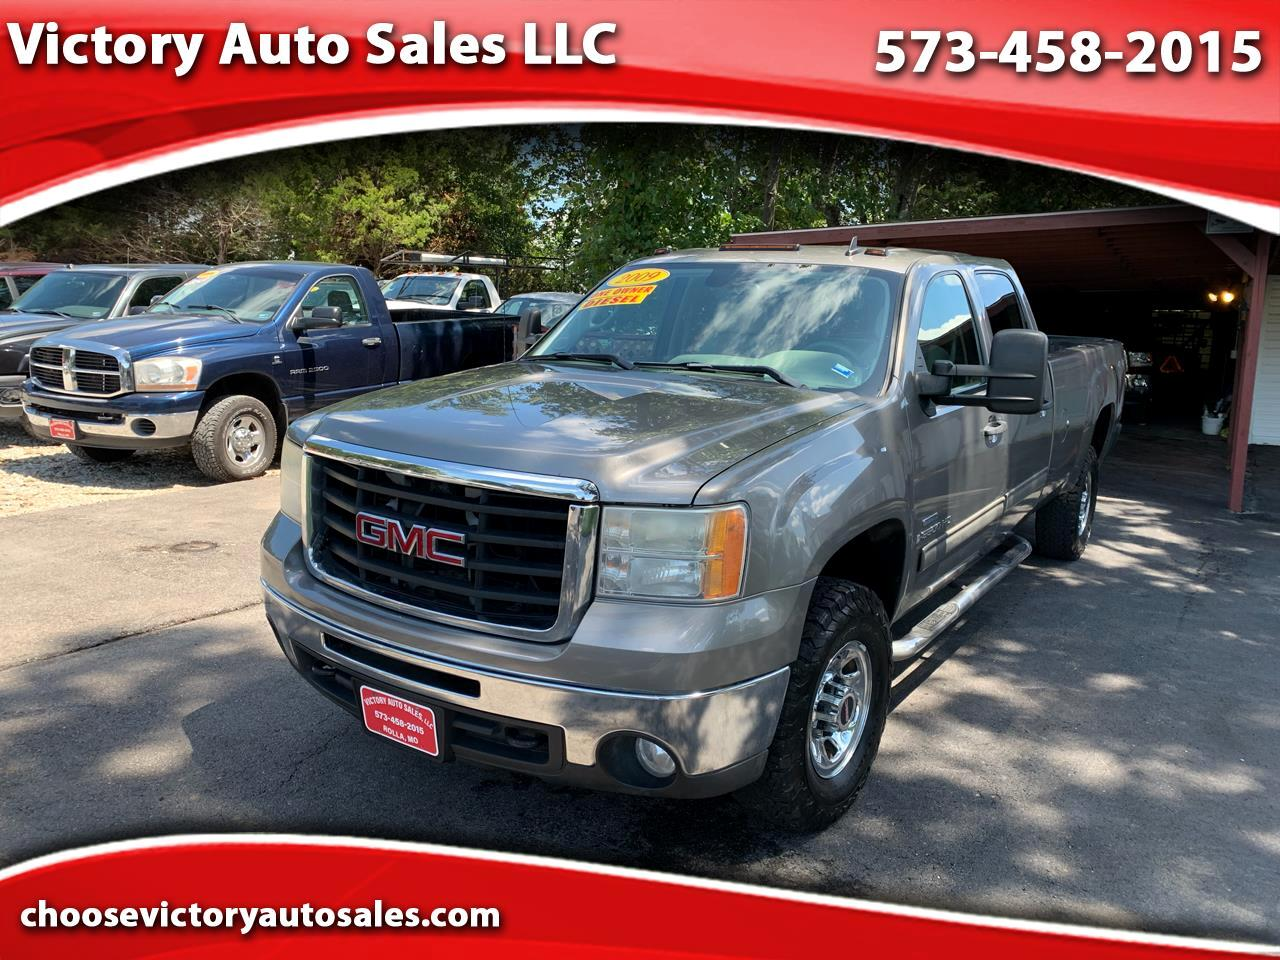 Victory Auto Sales >> Used Cars For Sale Rolla Mo 65401 Victory Auto Sales Llc